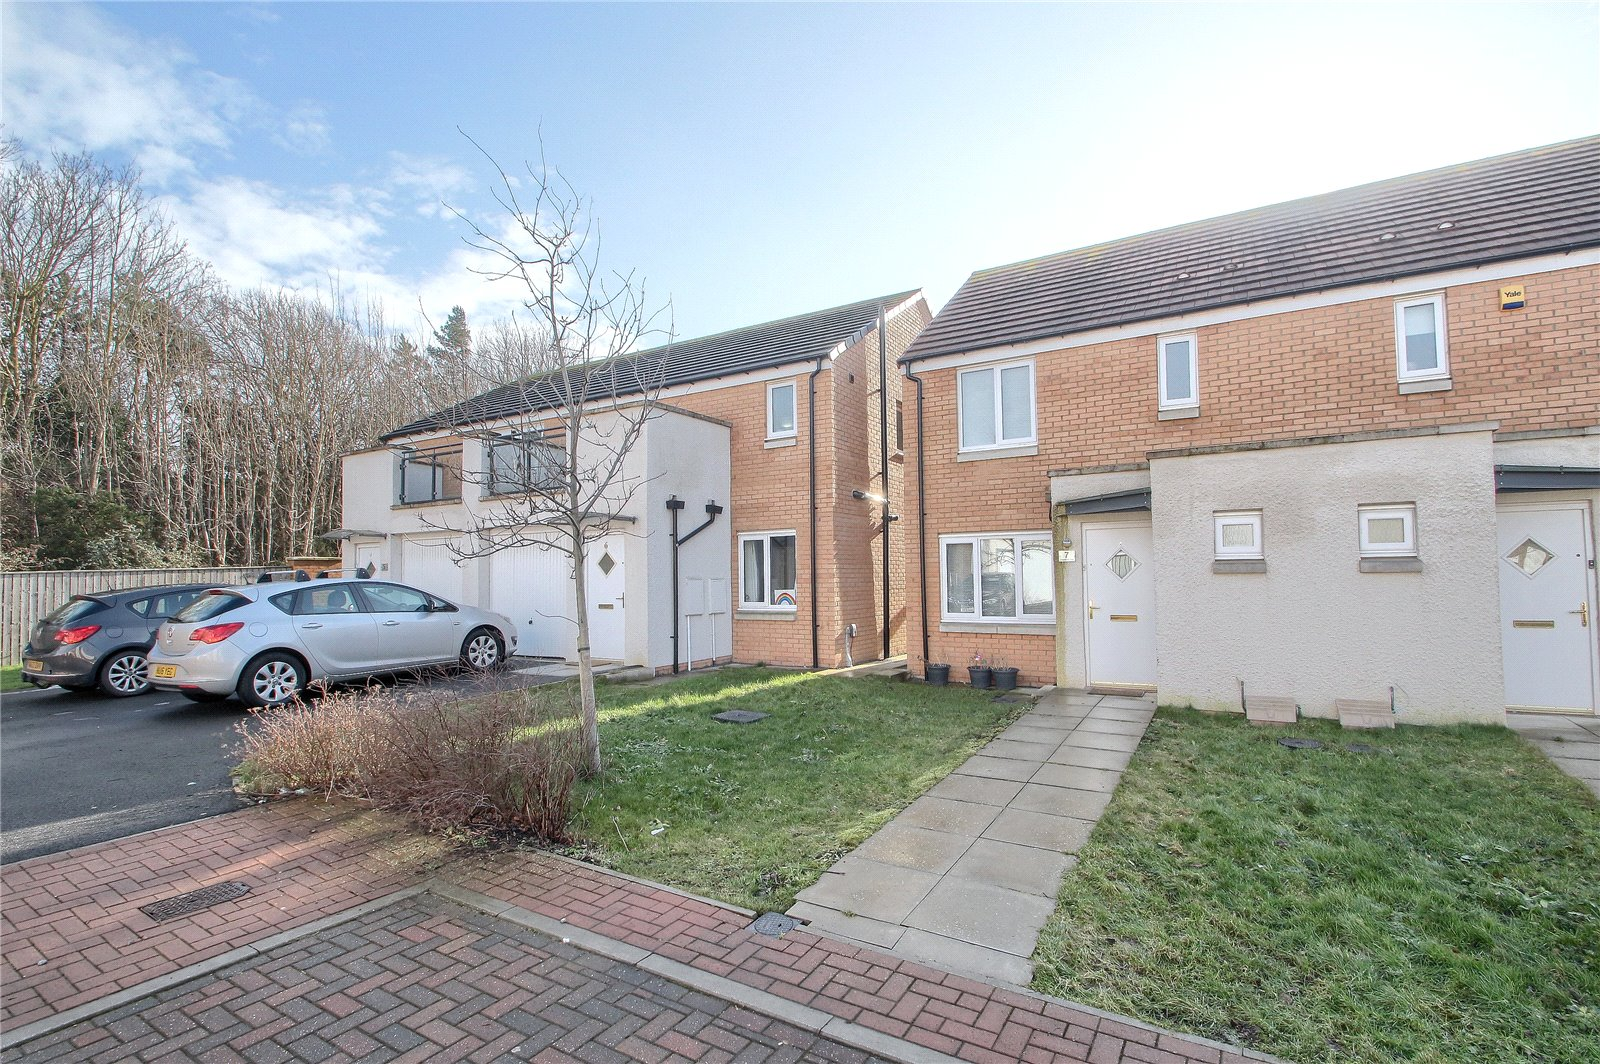 3 bed house for sale in Sleightholme Close, Whitewater Glade  - Property Image 1